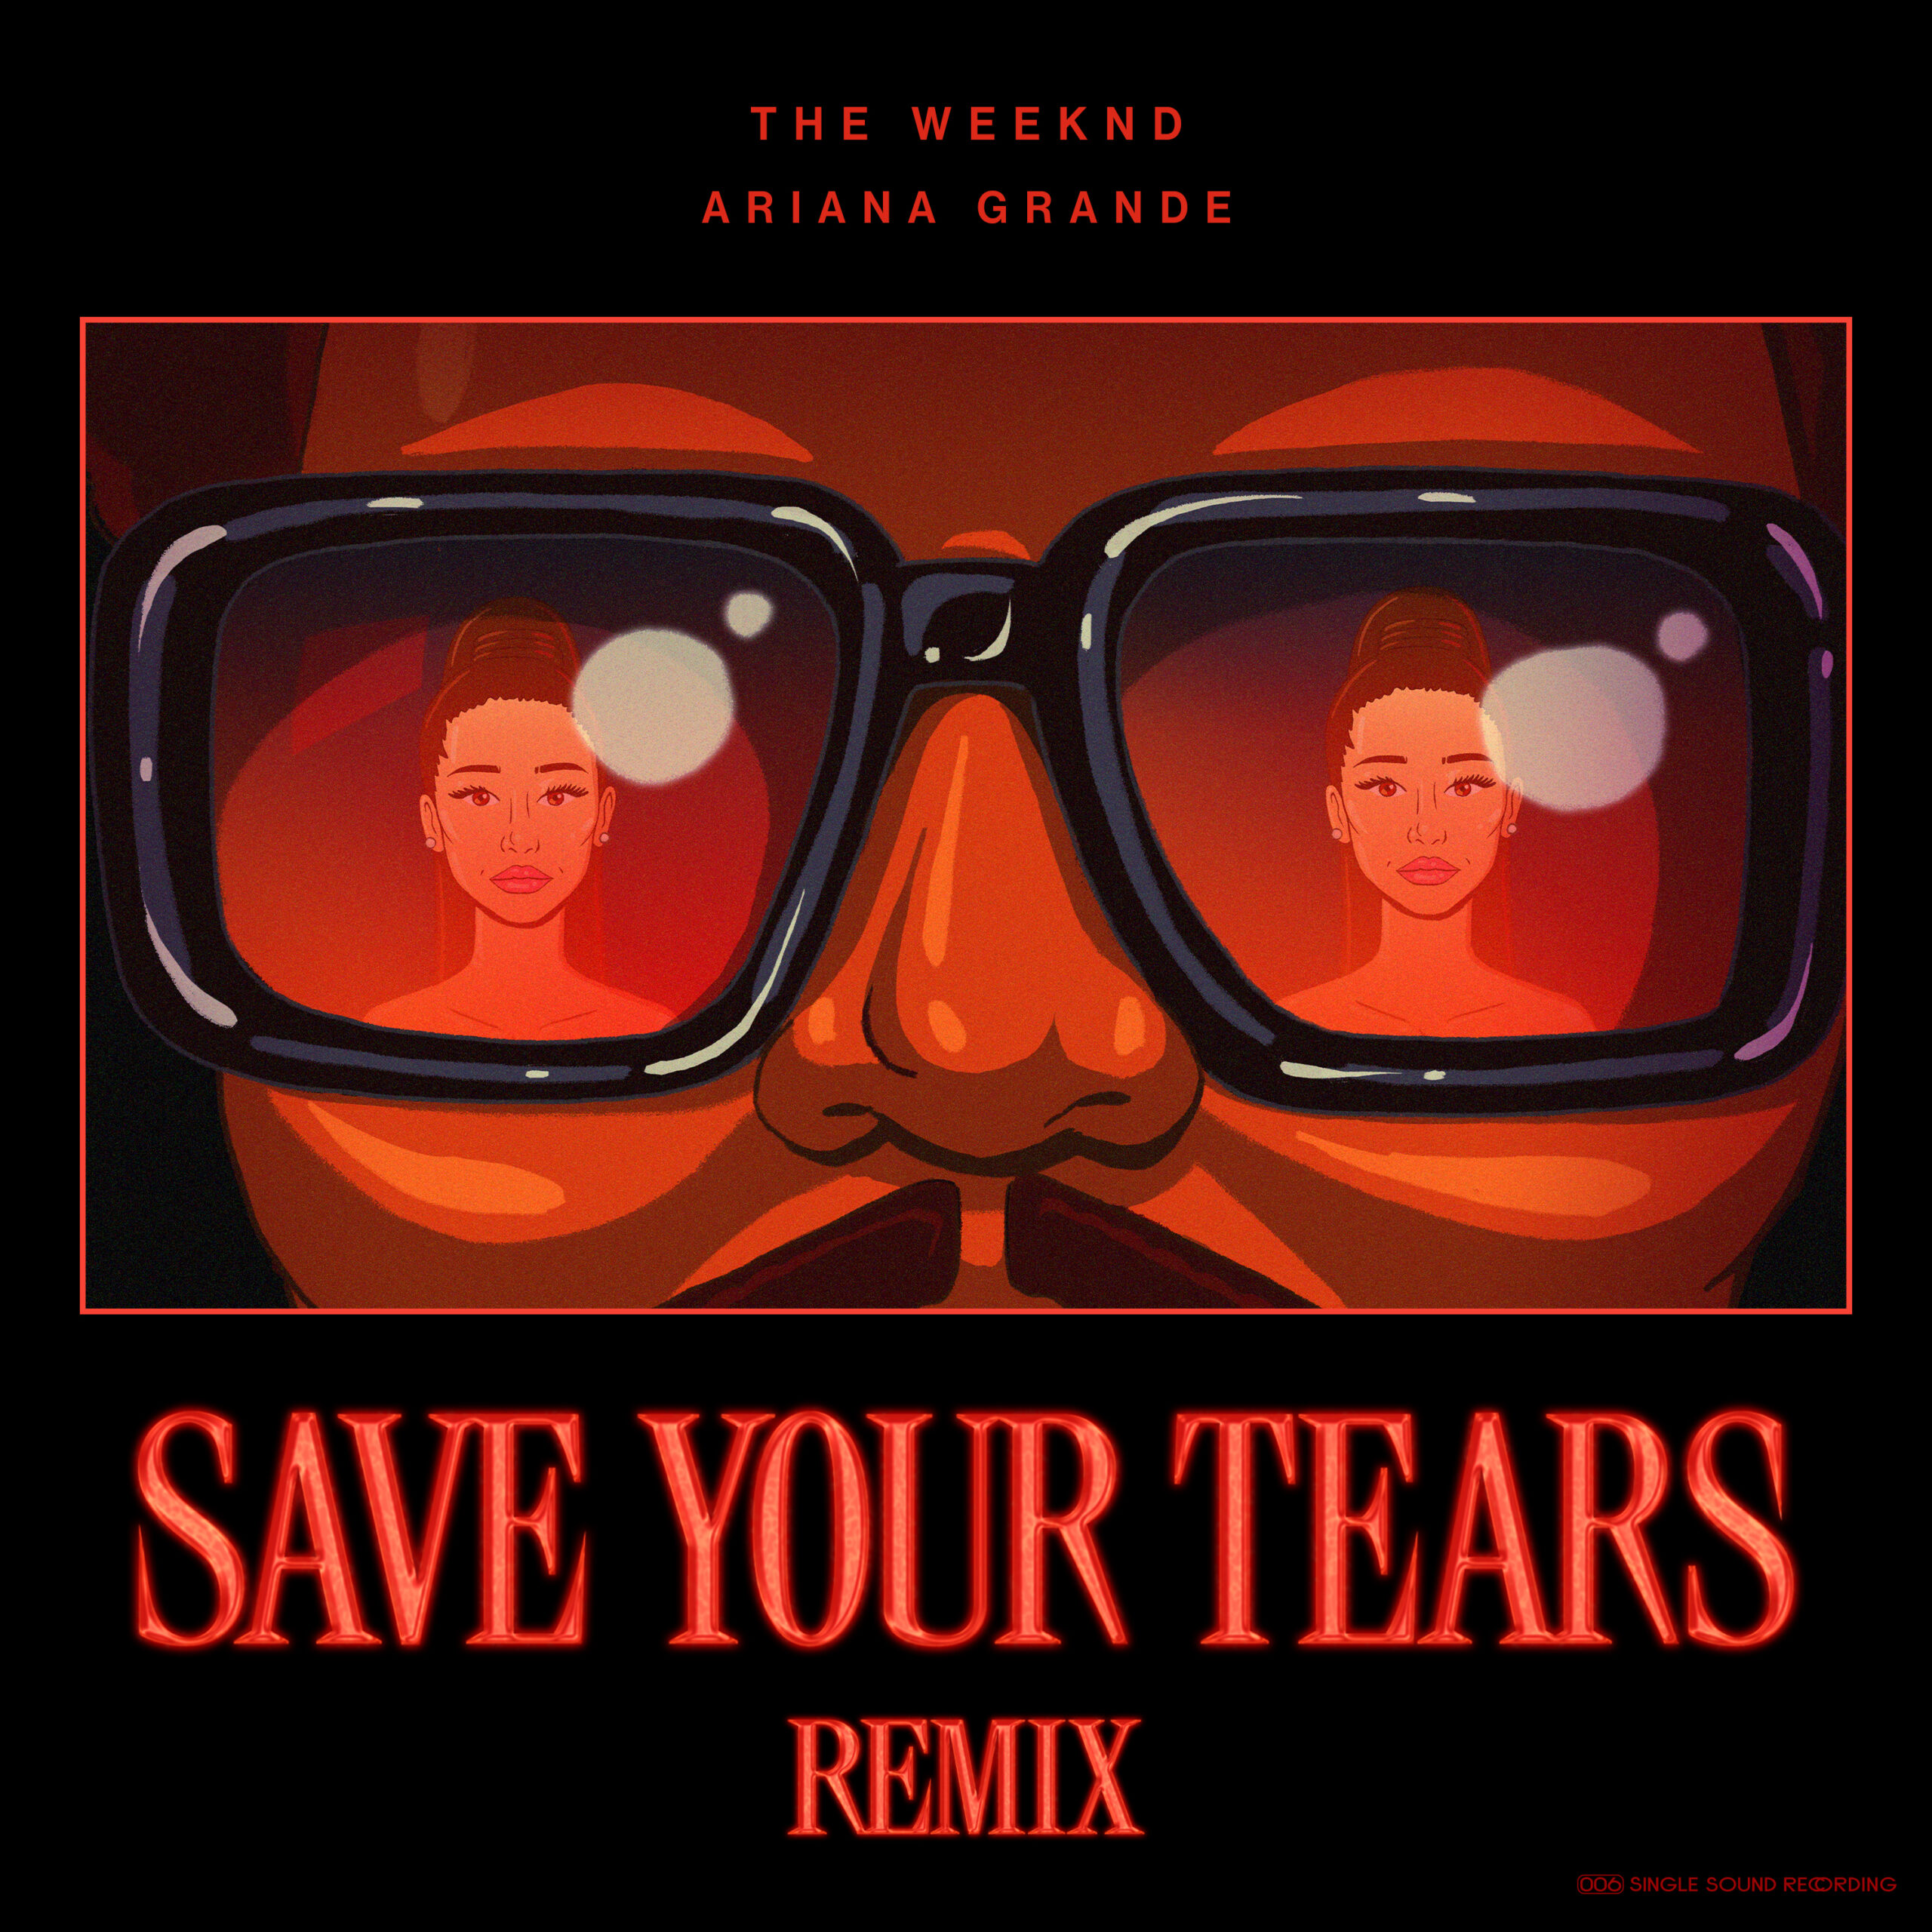 Save Your Tears by The Weeknd feat. Ariana Grande for use by 360 Magazine